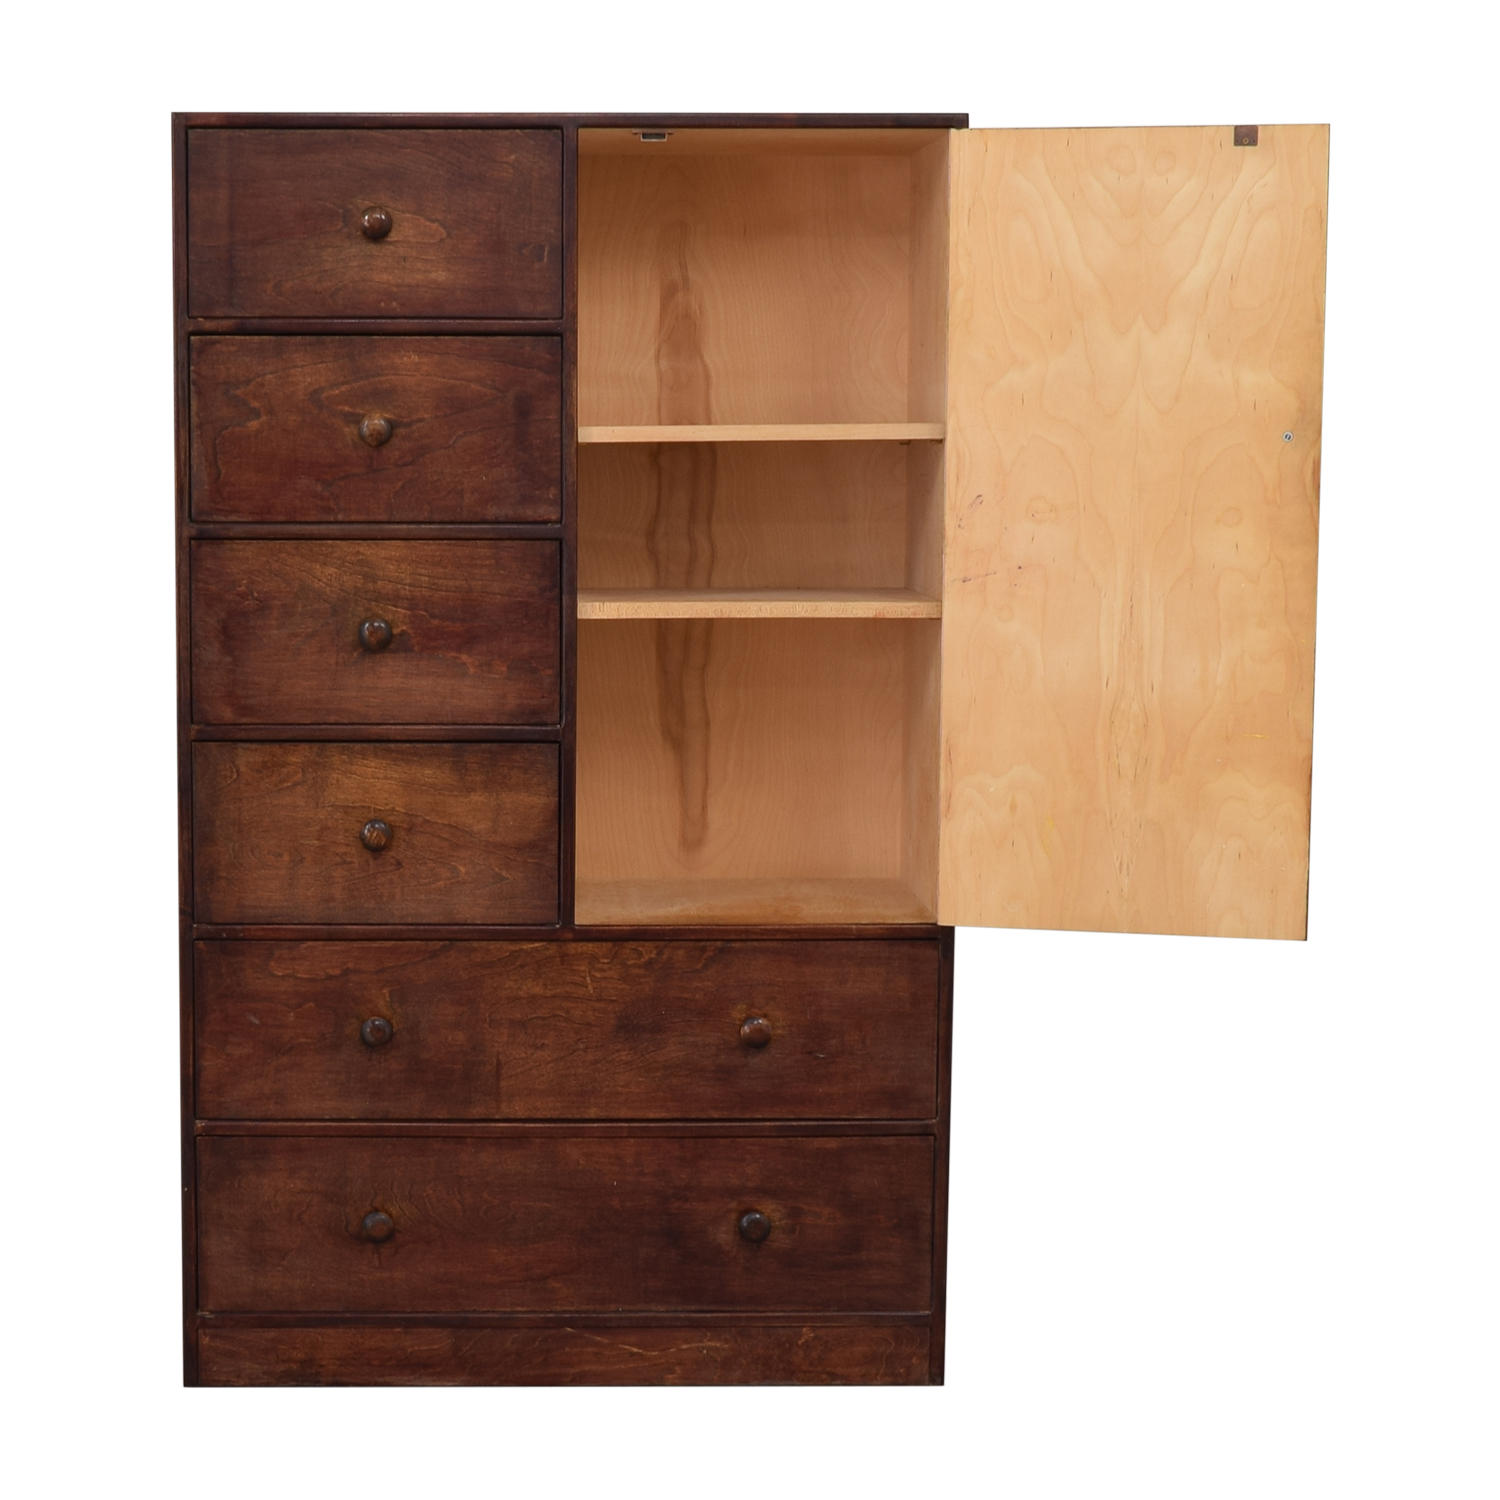 Six-Drawer and Shelving Clothing Armoire or Tall Dresser coupon